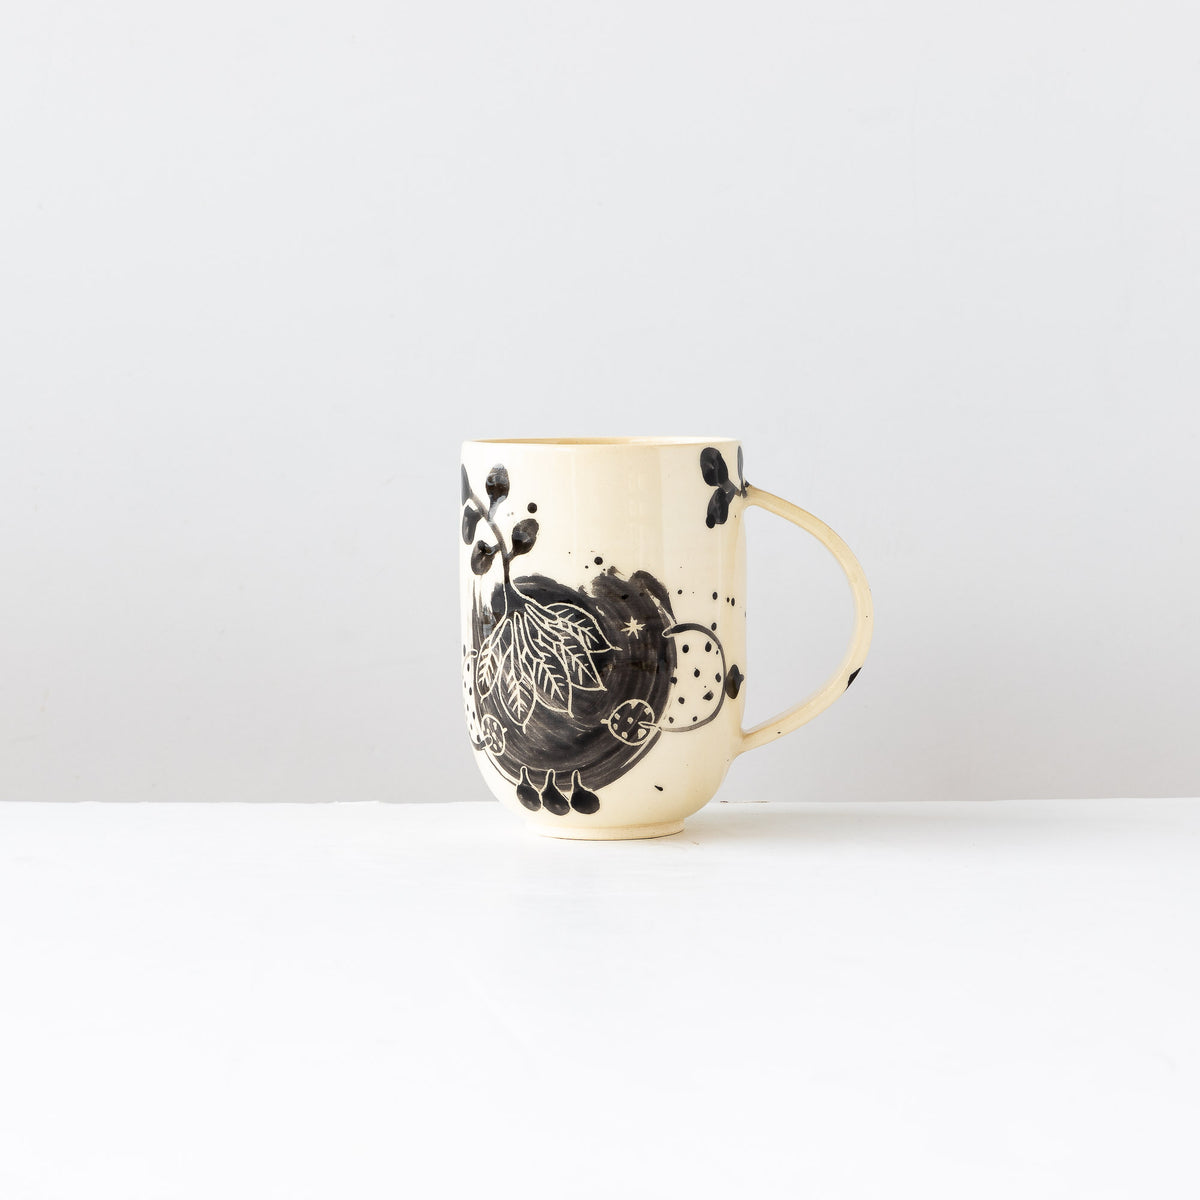 One Large Hand Painted Earthenware Mug - Sold by Chic & Basta